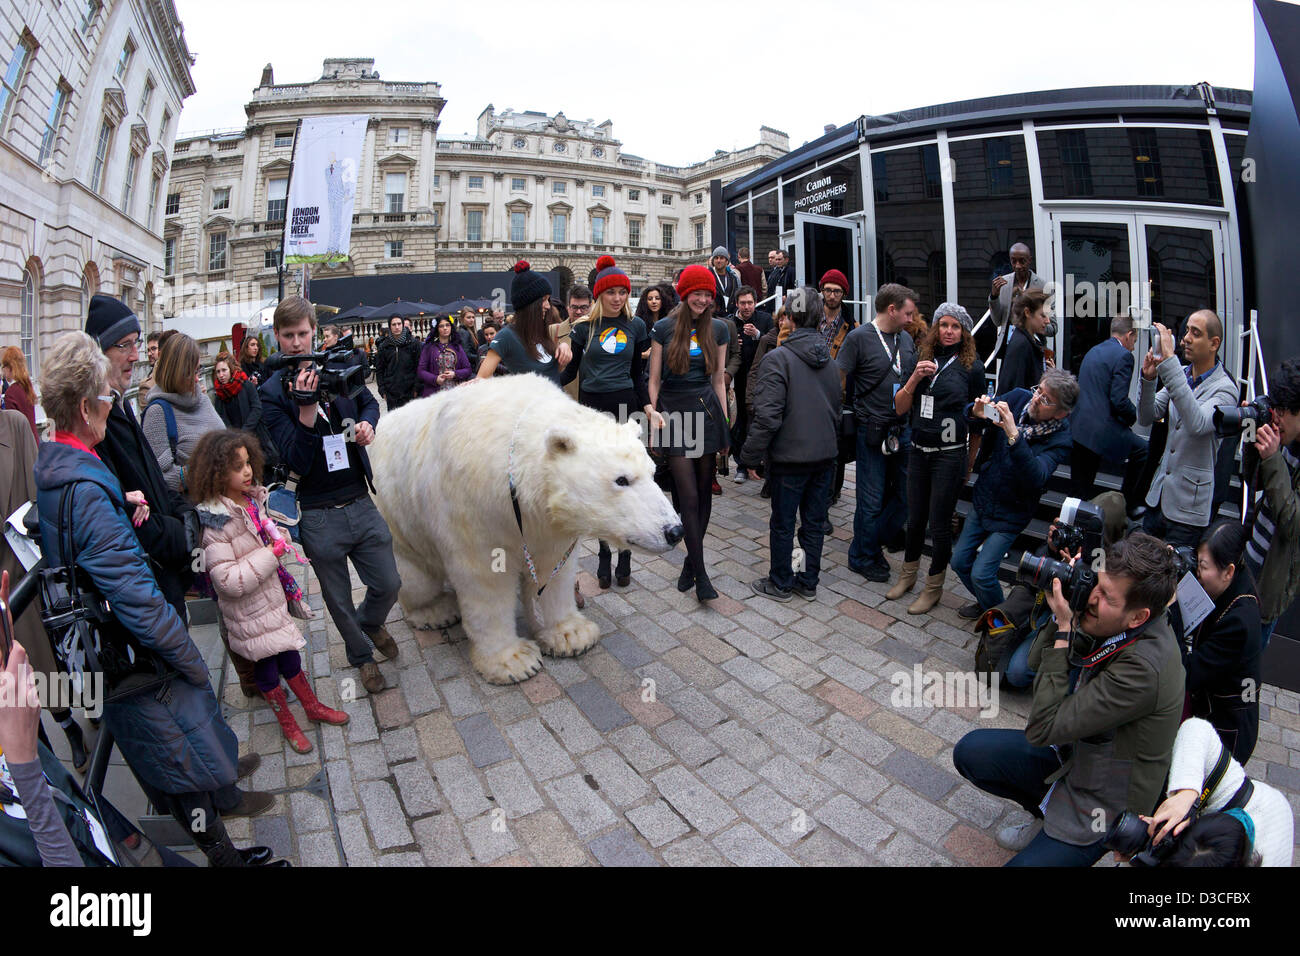 L'ours polaire Greenpeace visite London Fashion Week 15 février 2013 Somerset House, Londres, Angleterre, Photo Stock